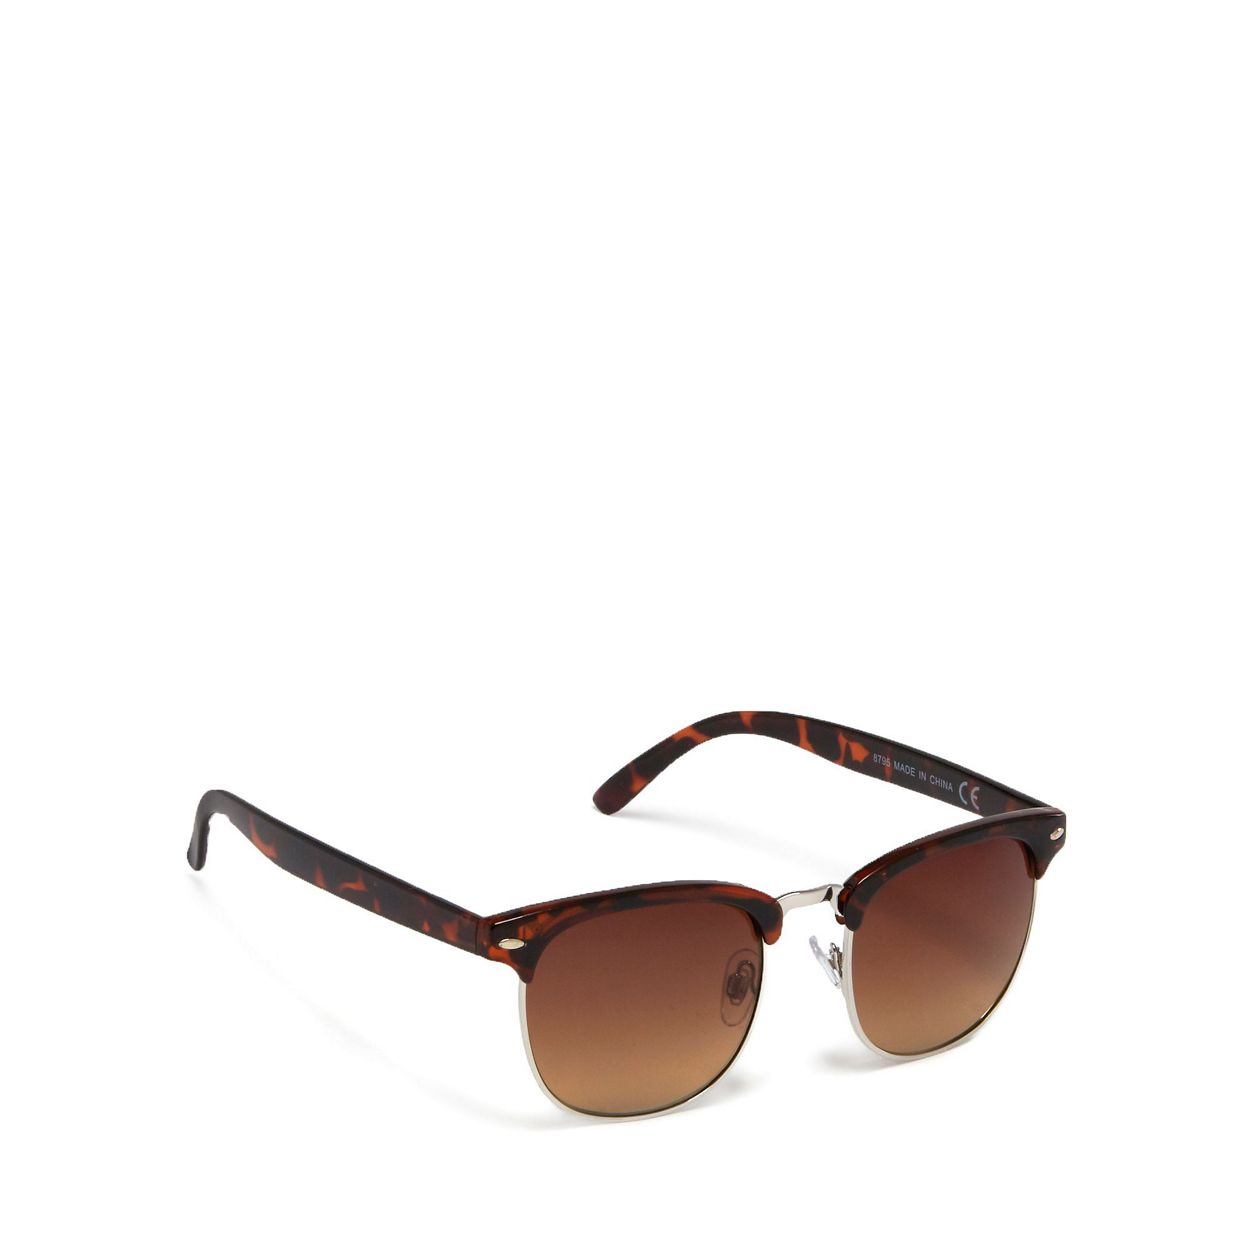 The Collection Brown tortoise shell square retro frame sunglasses